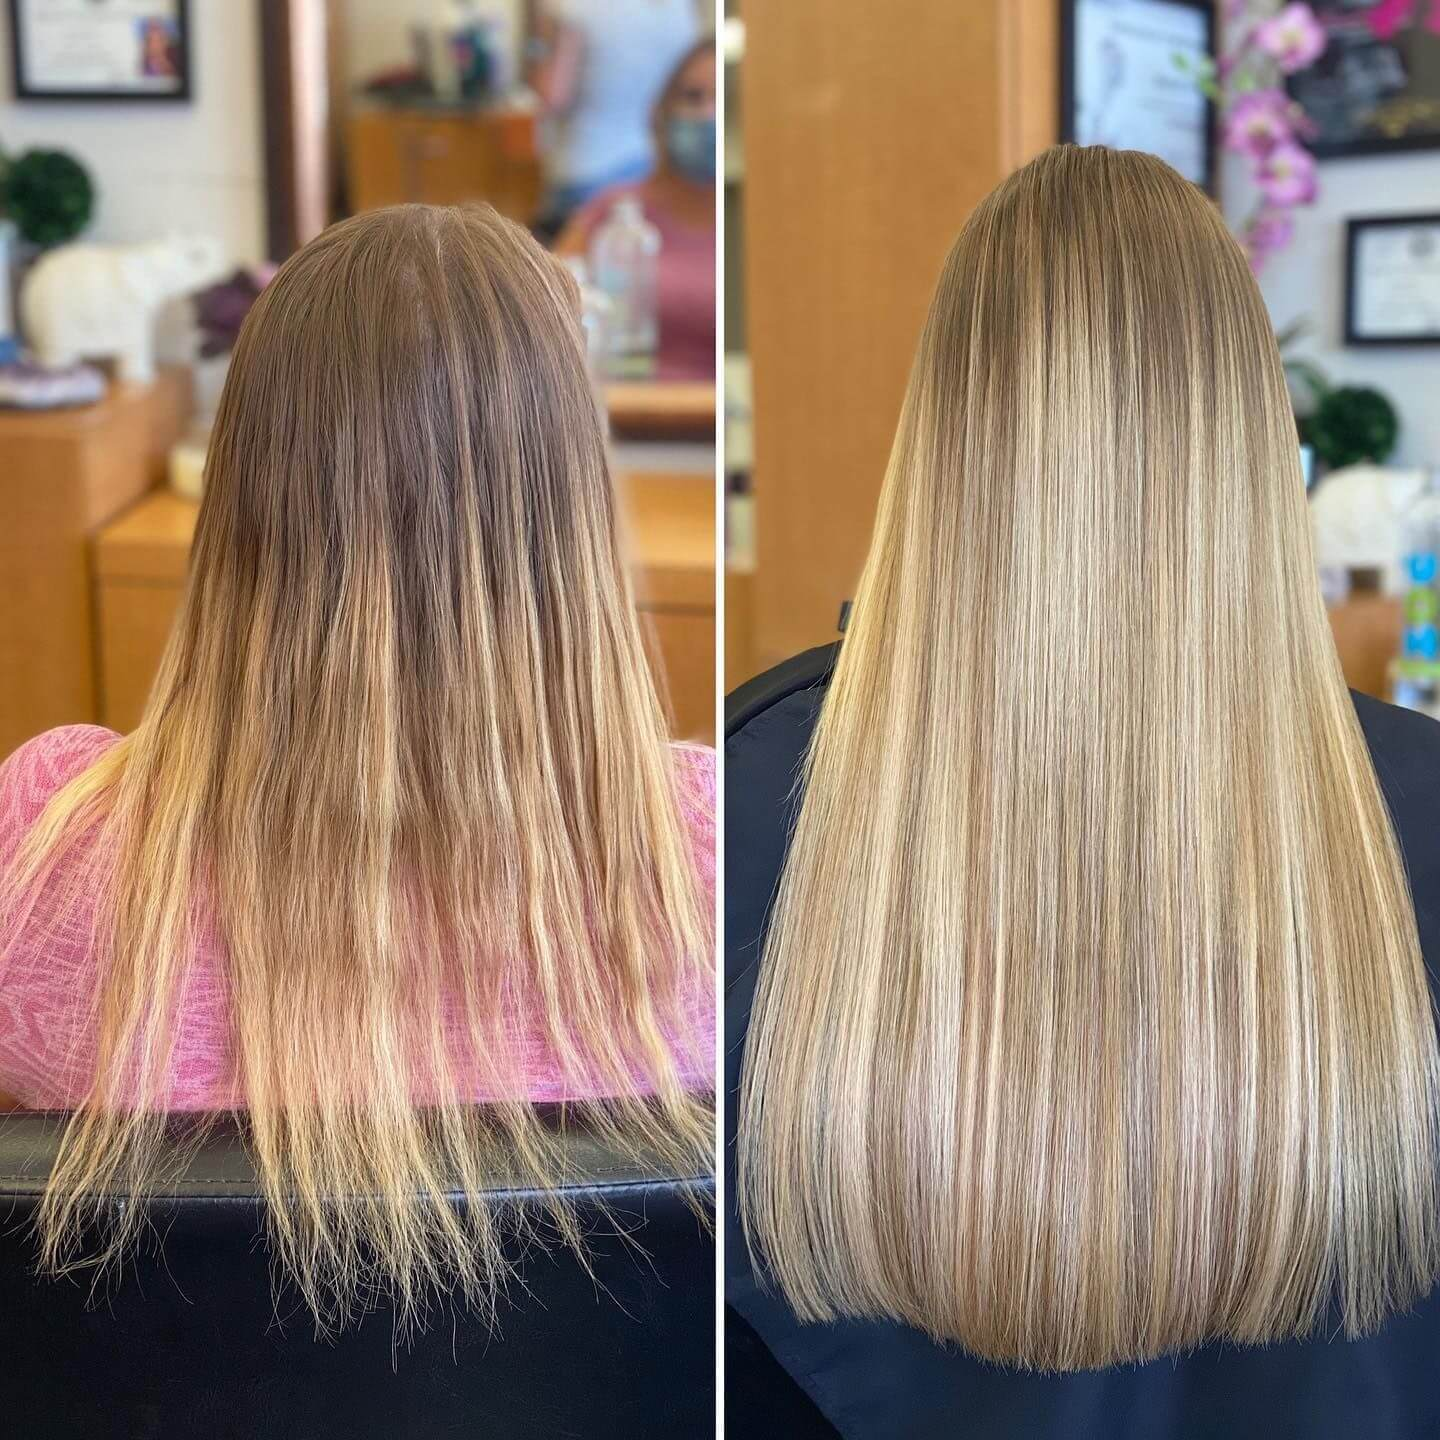 hair extensions human hair before and after